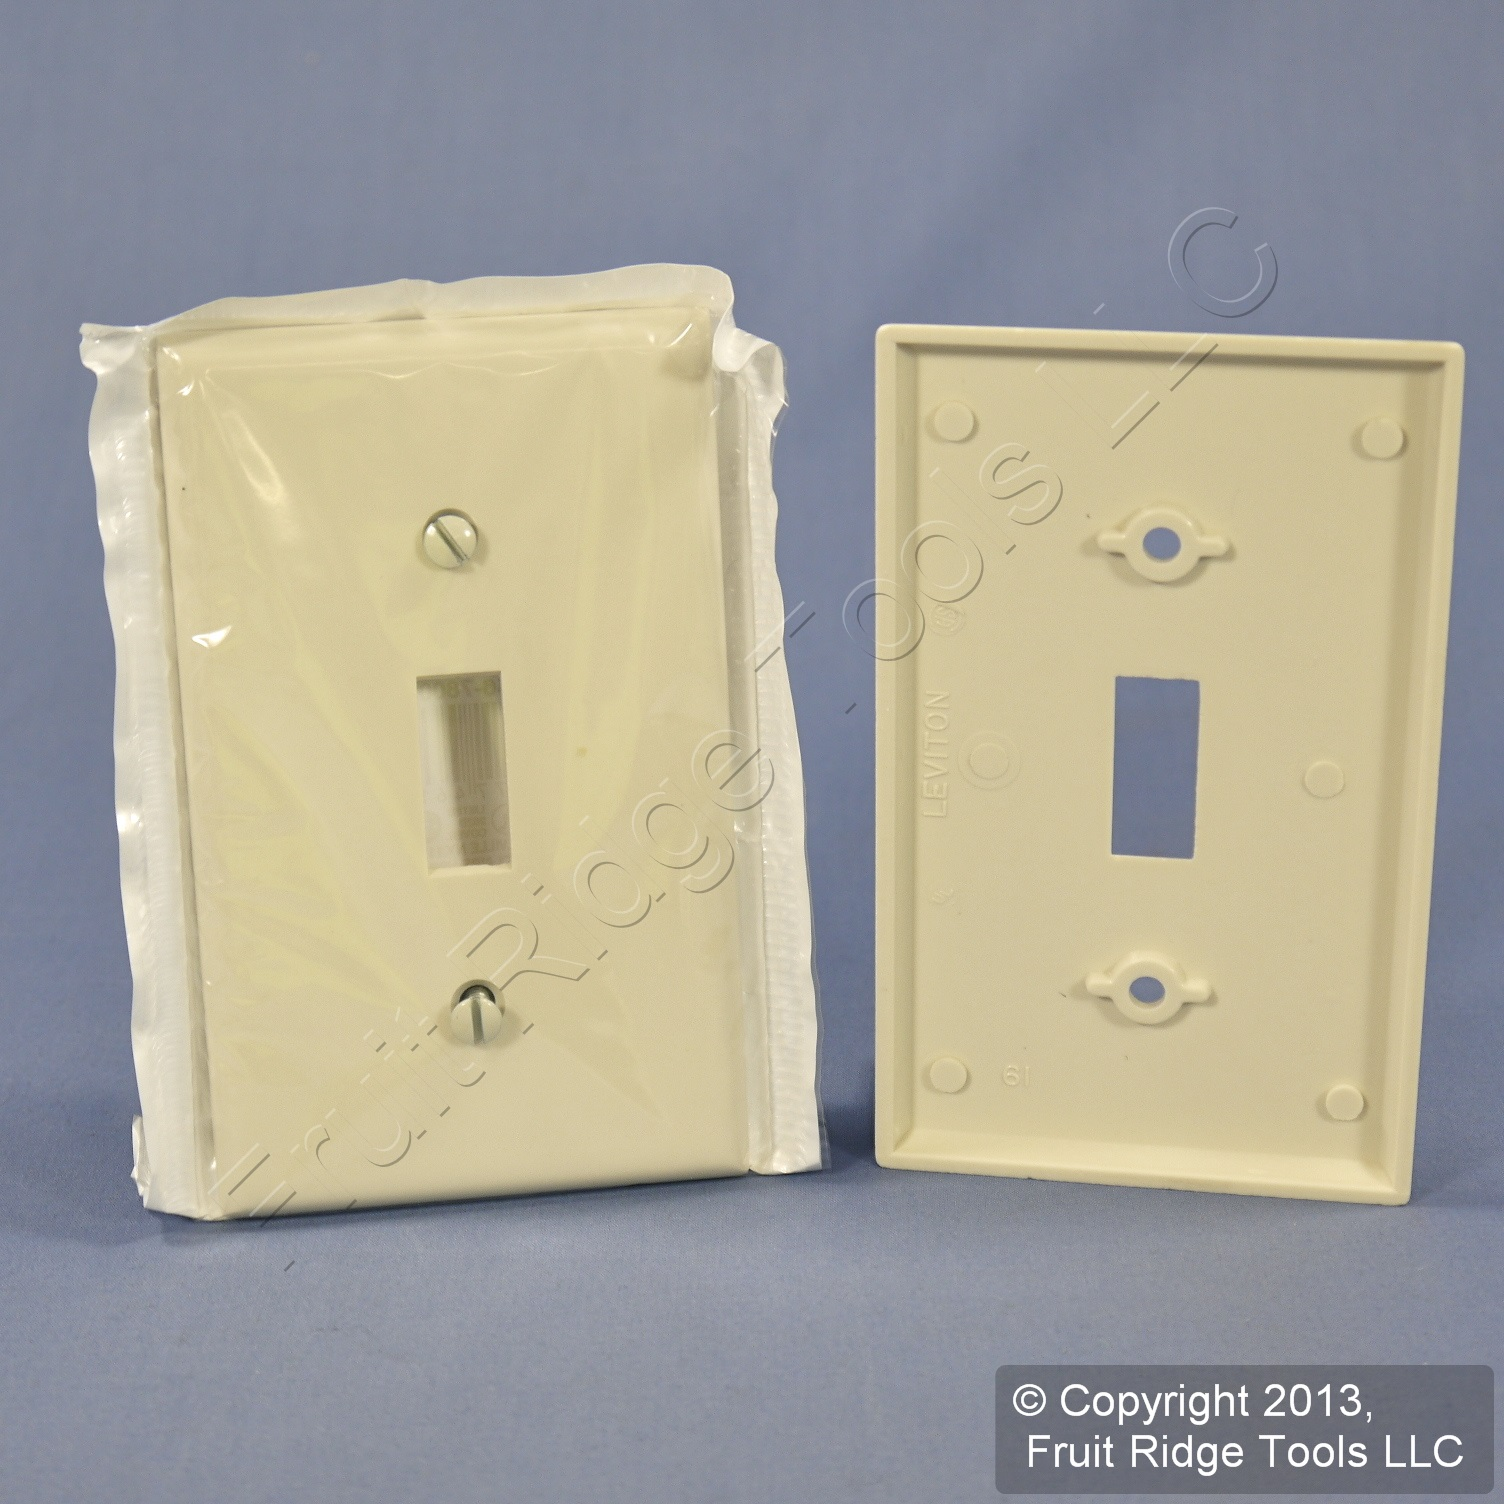 Diy Decorative Light Switch Covers Wanker For Decorative